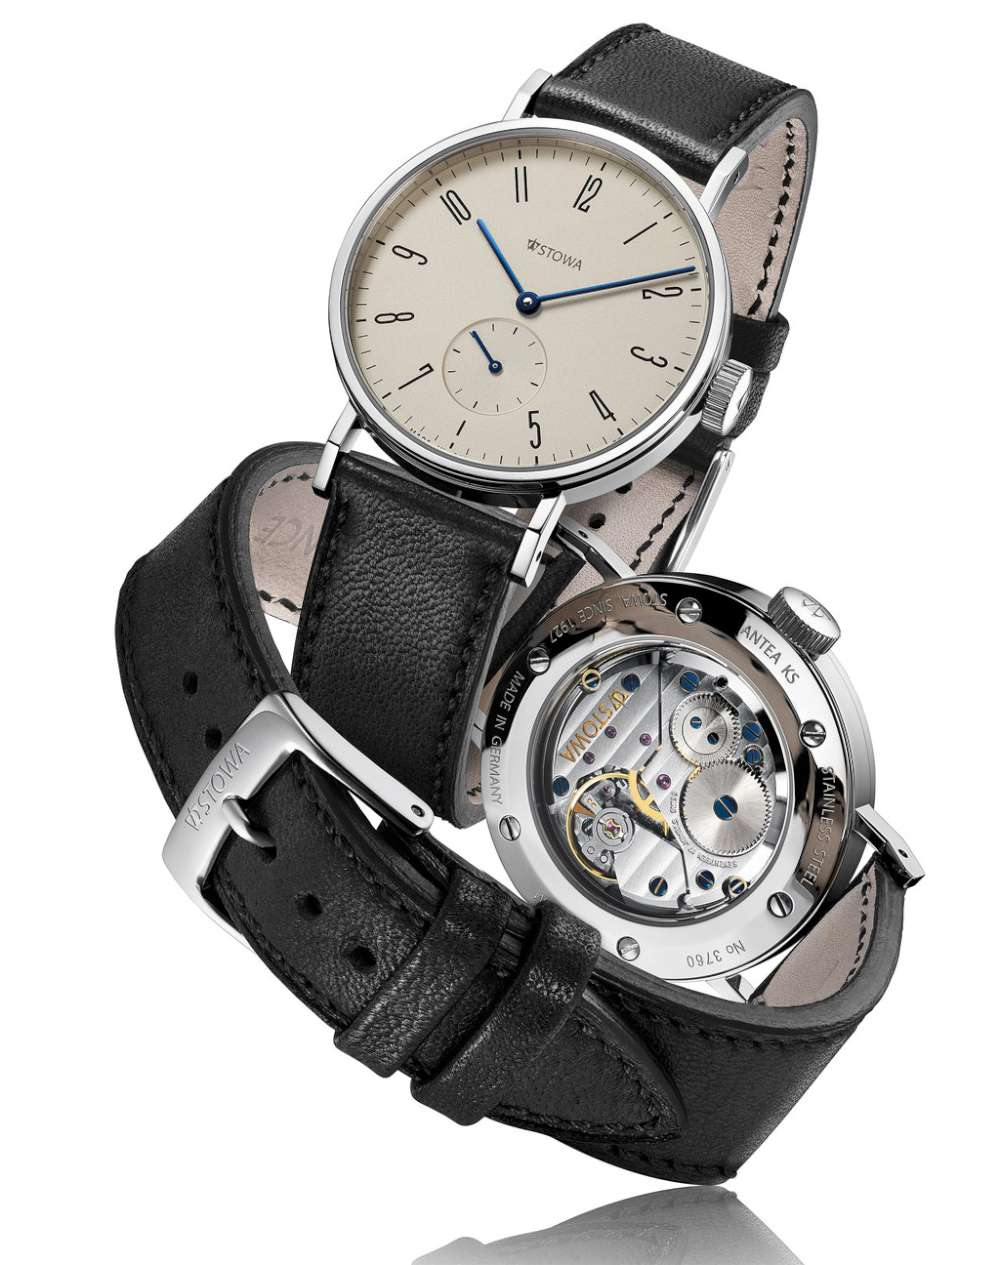 Stowa Antea Klassik KS dress watch front and back